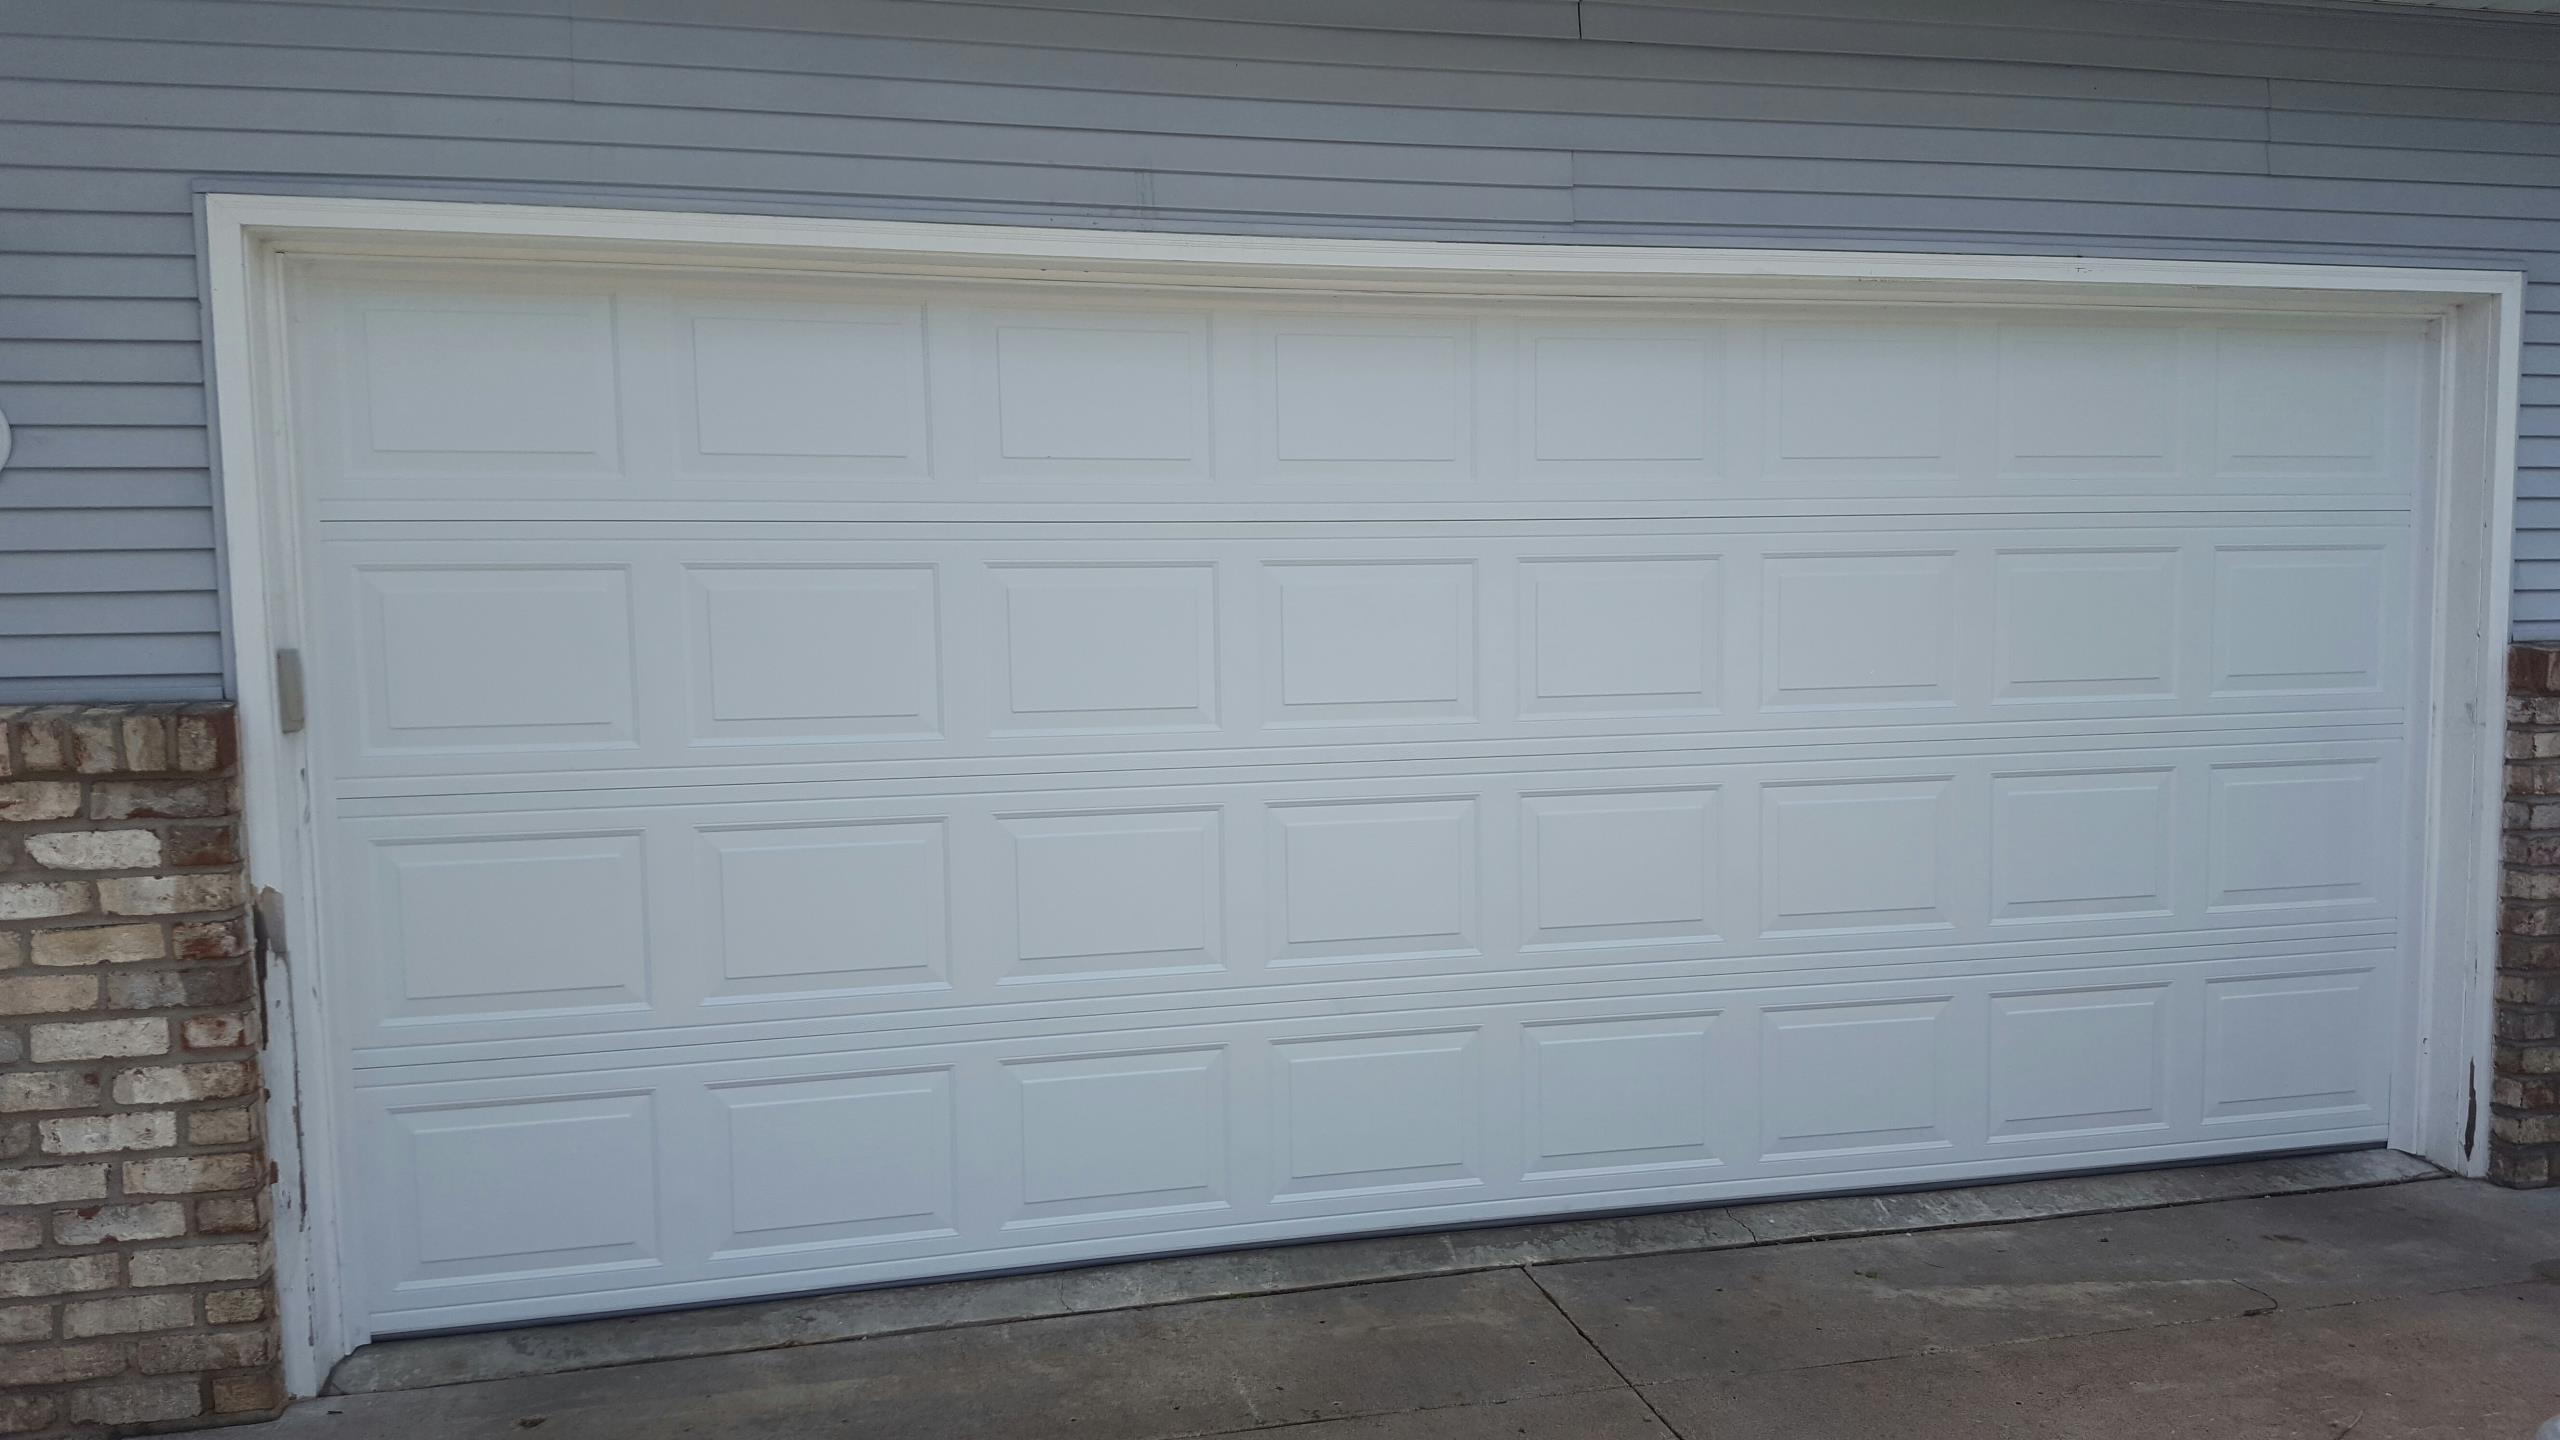 Little Canada, MN - Jeremy installed 16 by 7 garage door